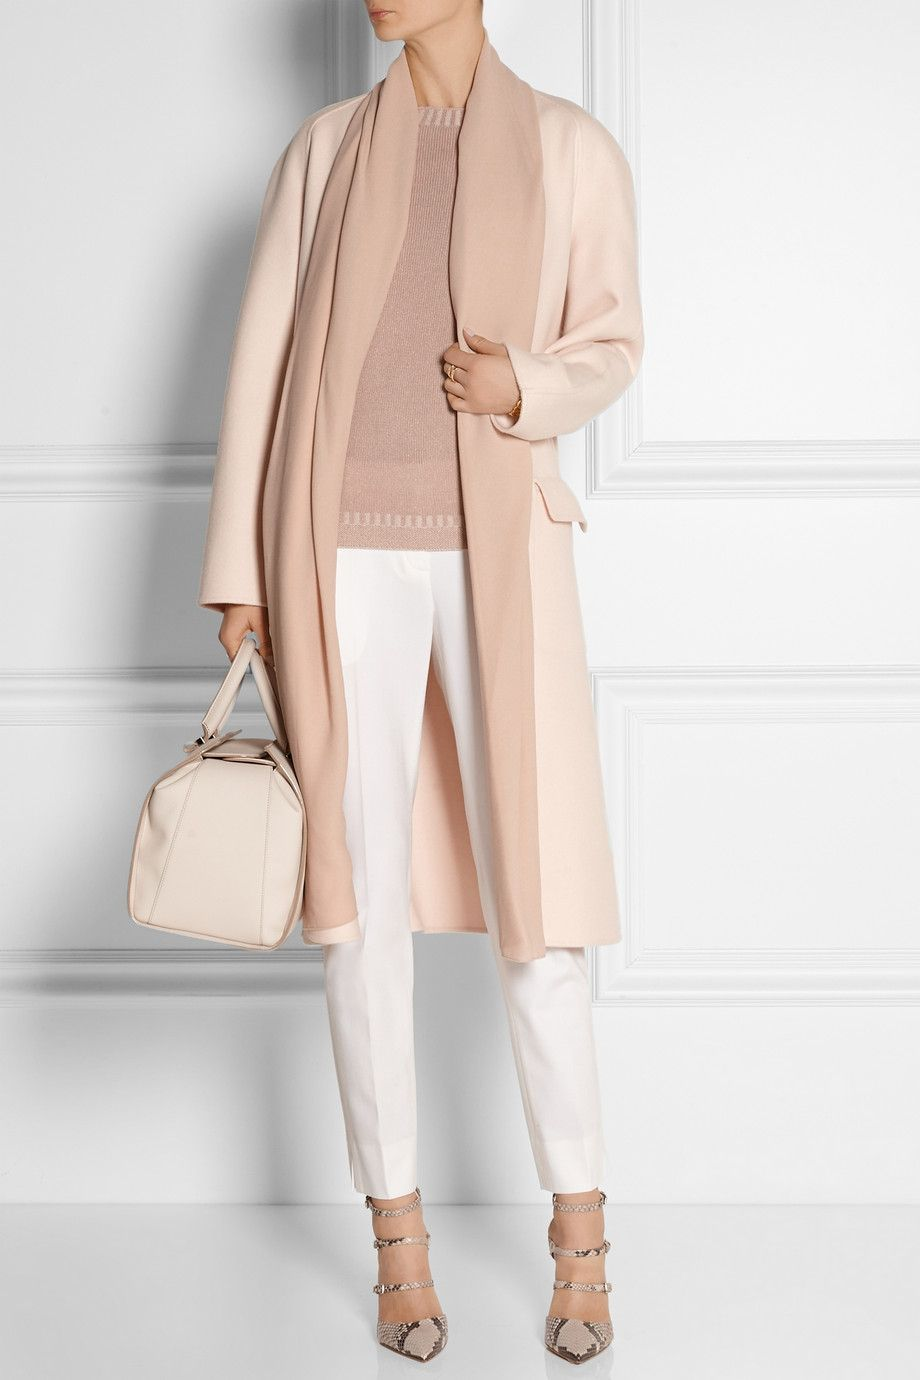 Bottega Veneta coat, Burberry Prorsum sweater, Theory pants, Gianvito Rossi shoes, Victoria Beckham bag